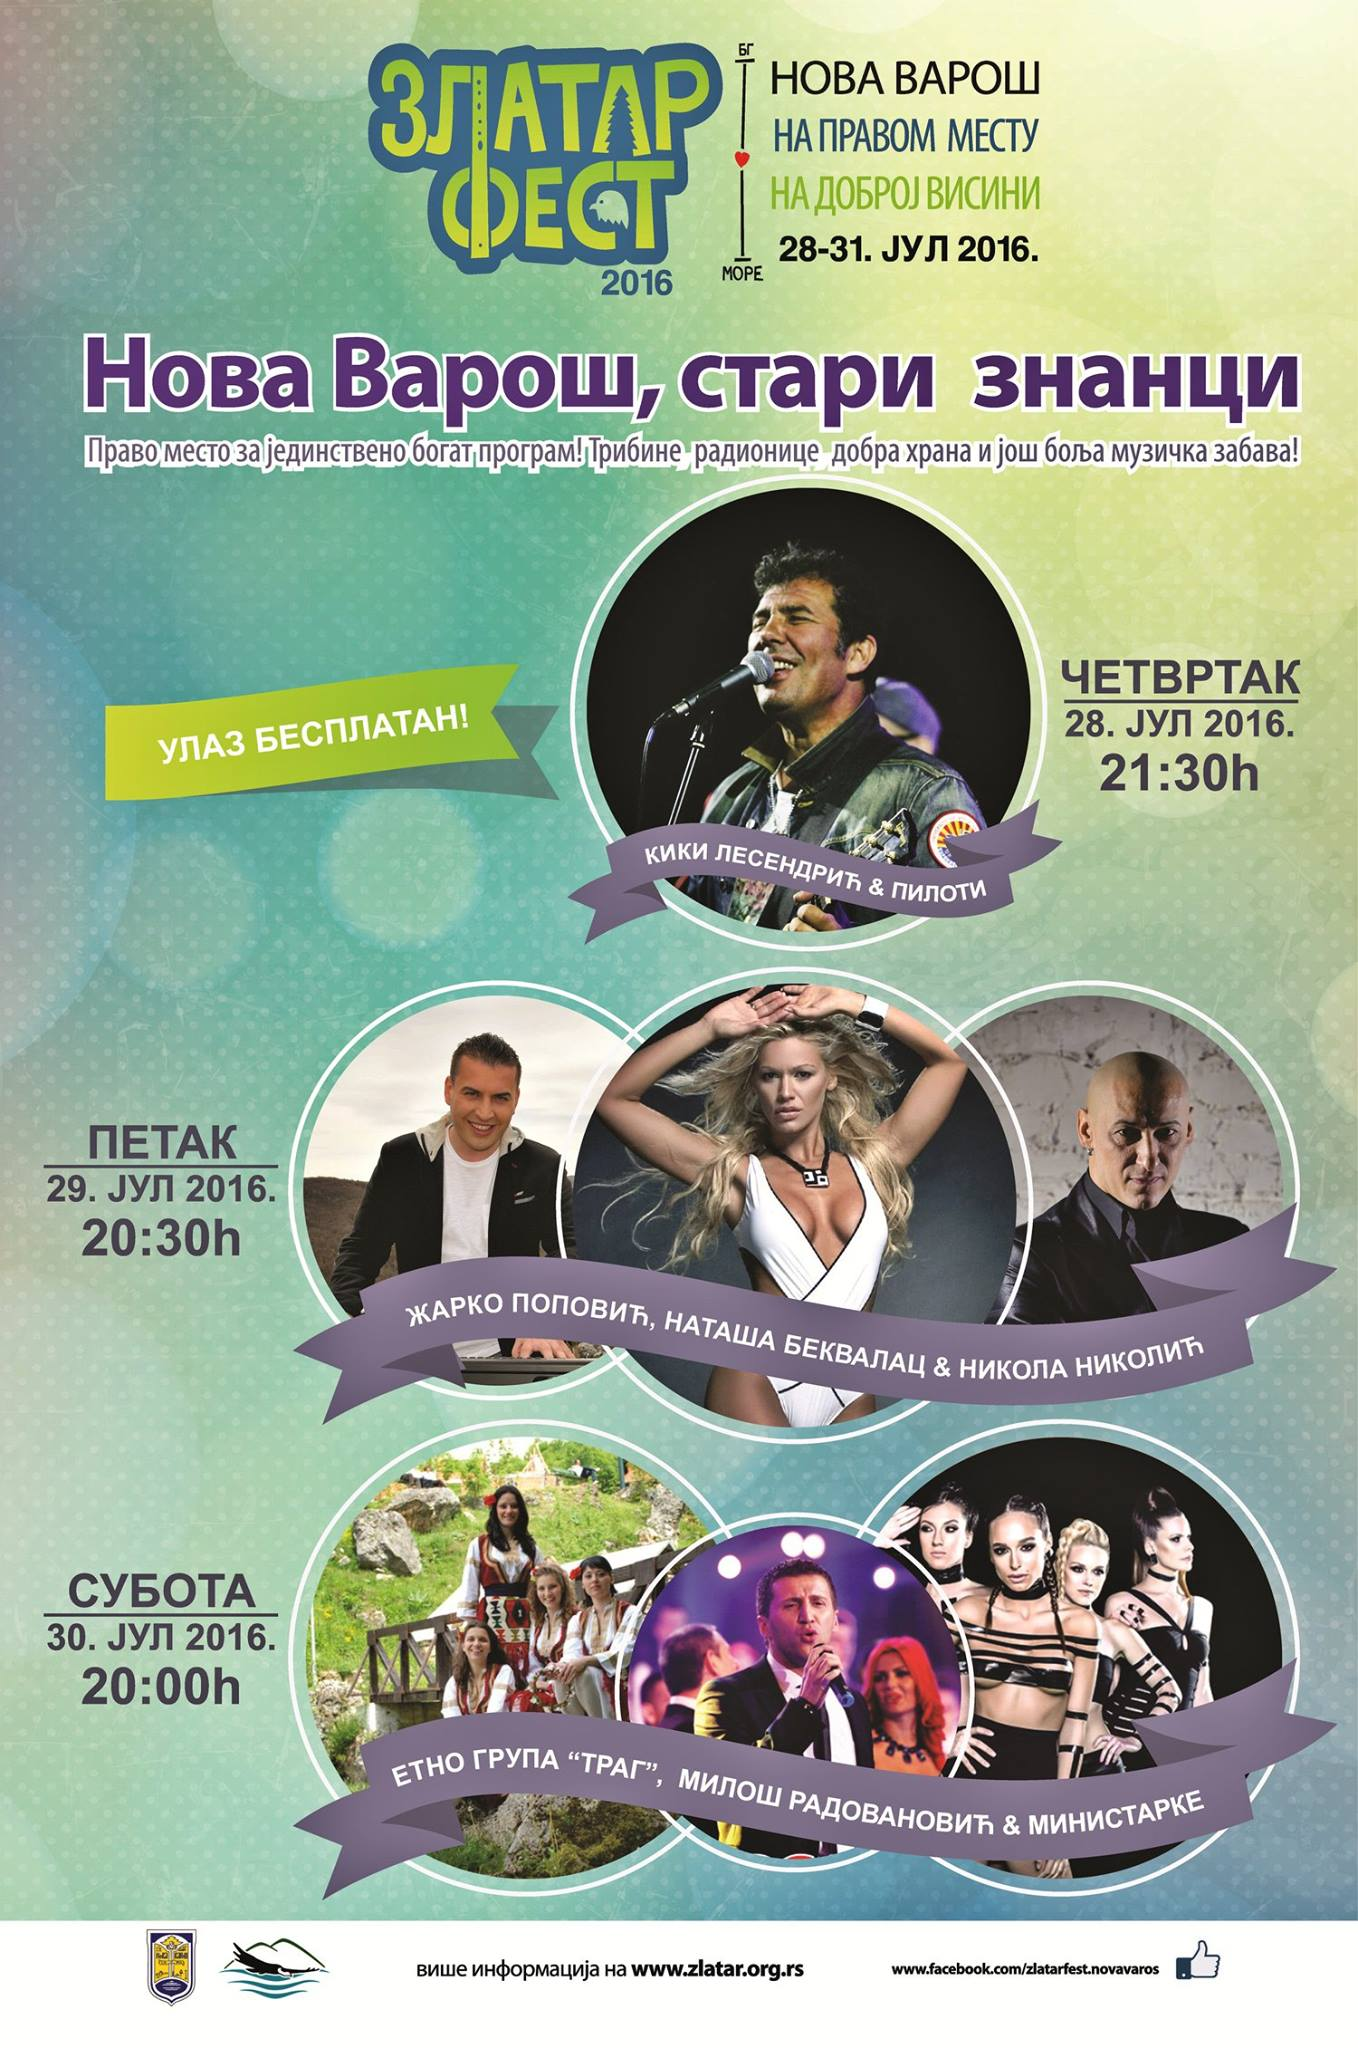 Zlatar Fest 2016 Program plakat